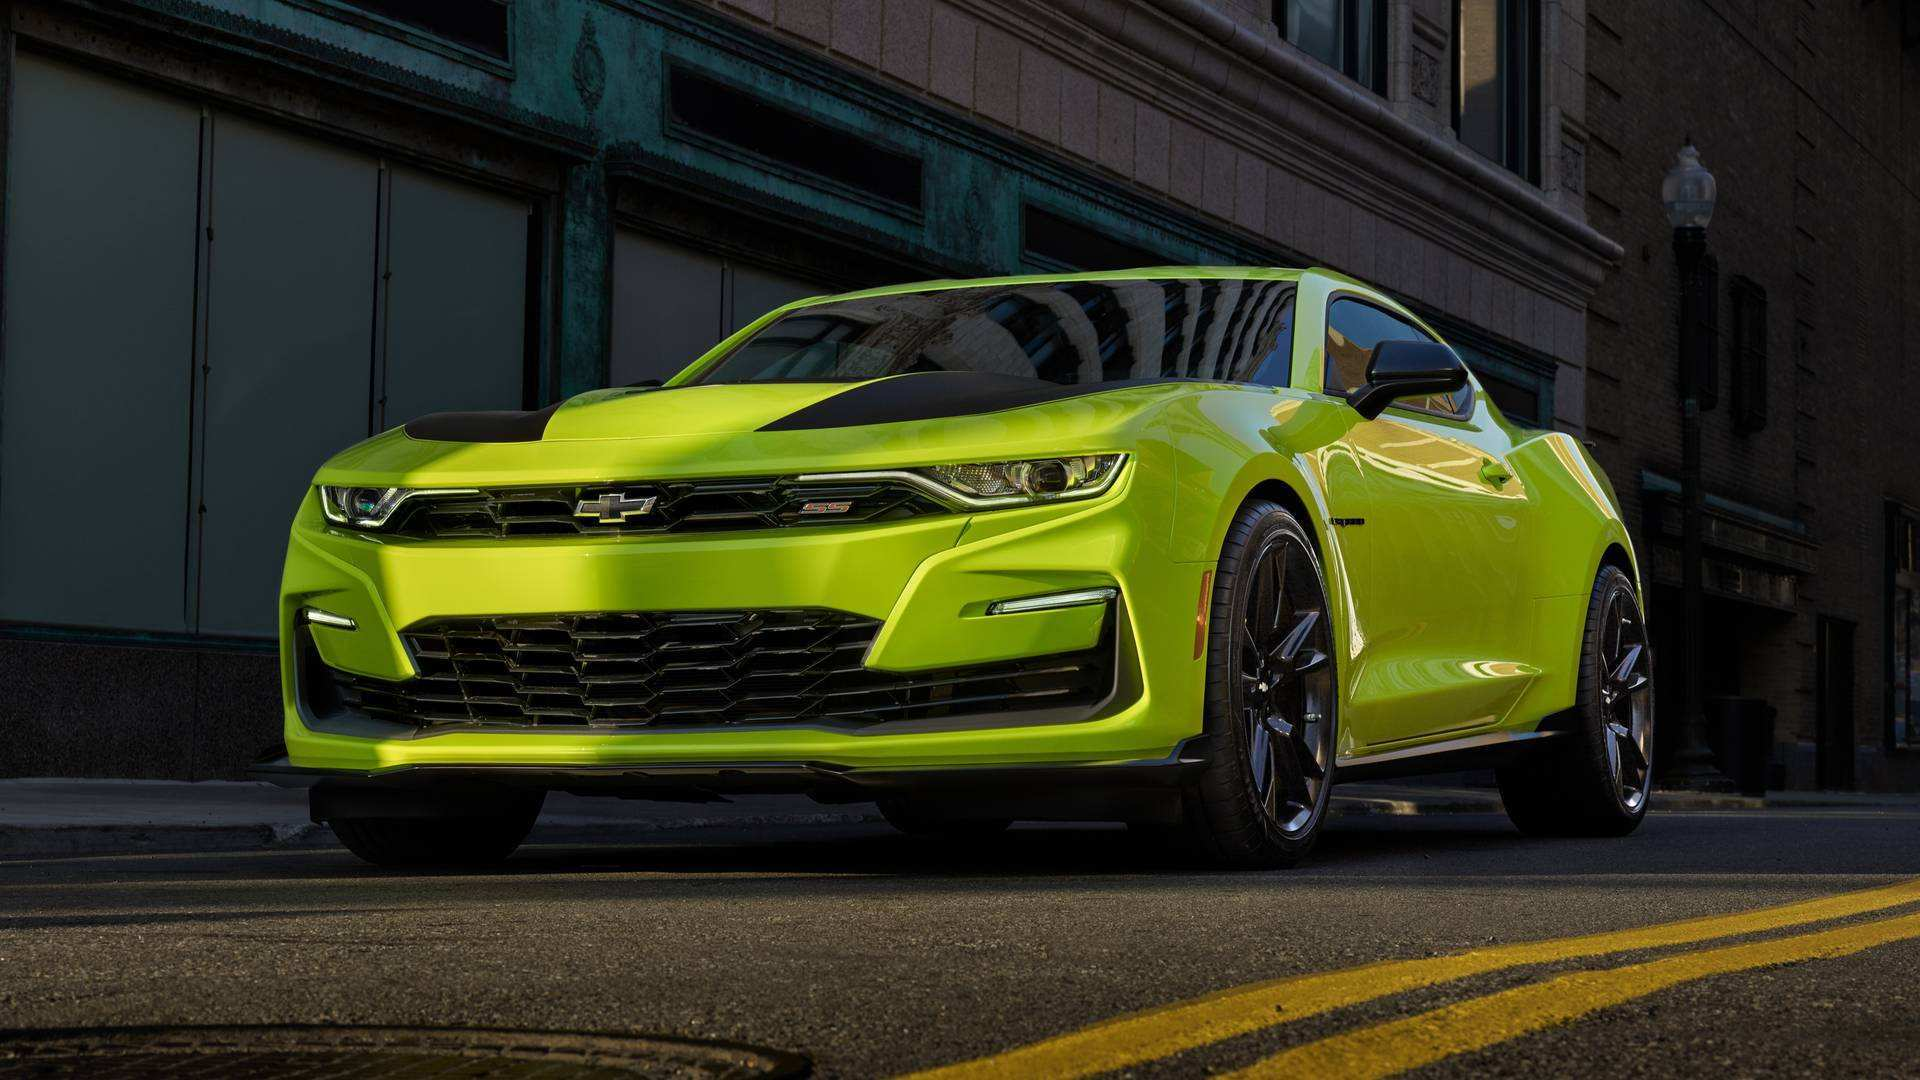 67 New Chevrolet Concept Cars 2020 Model for Chevrolet Concept Cars 2020